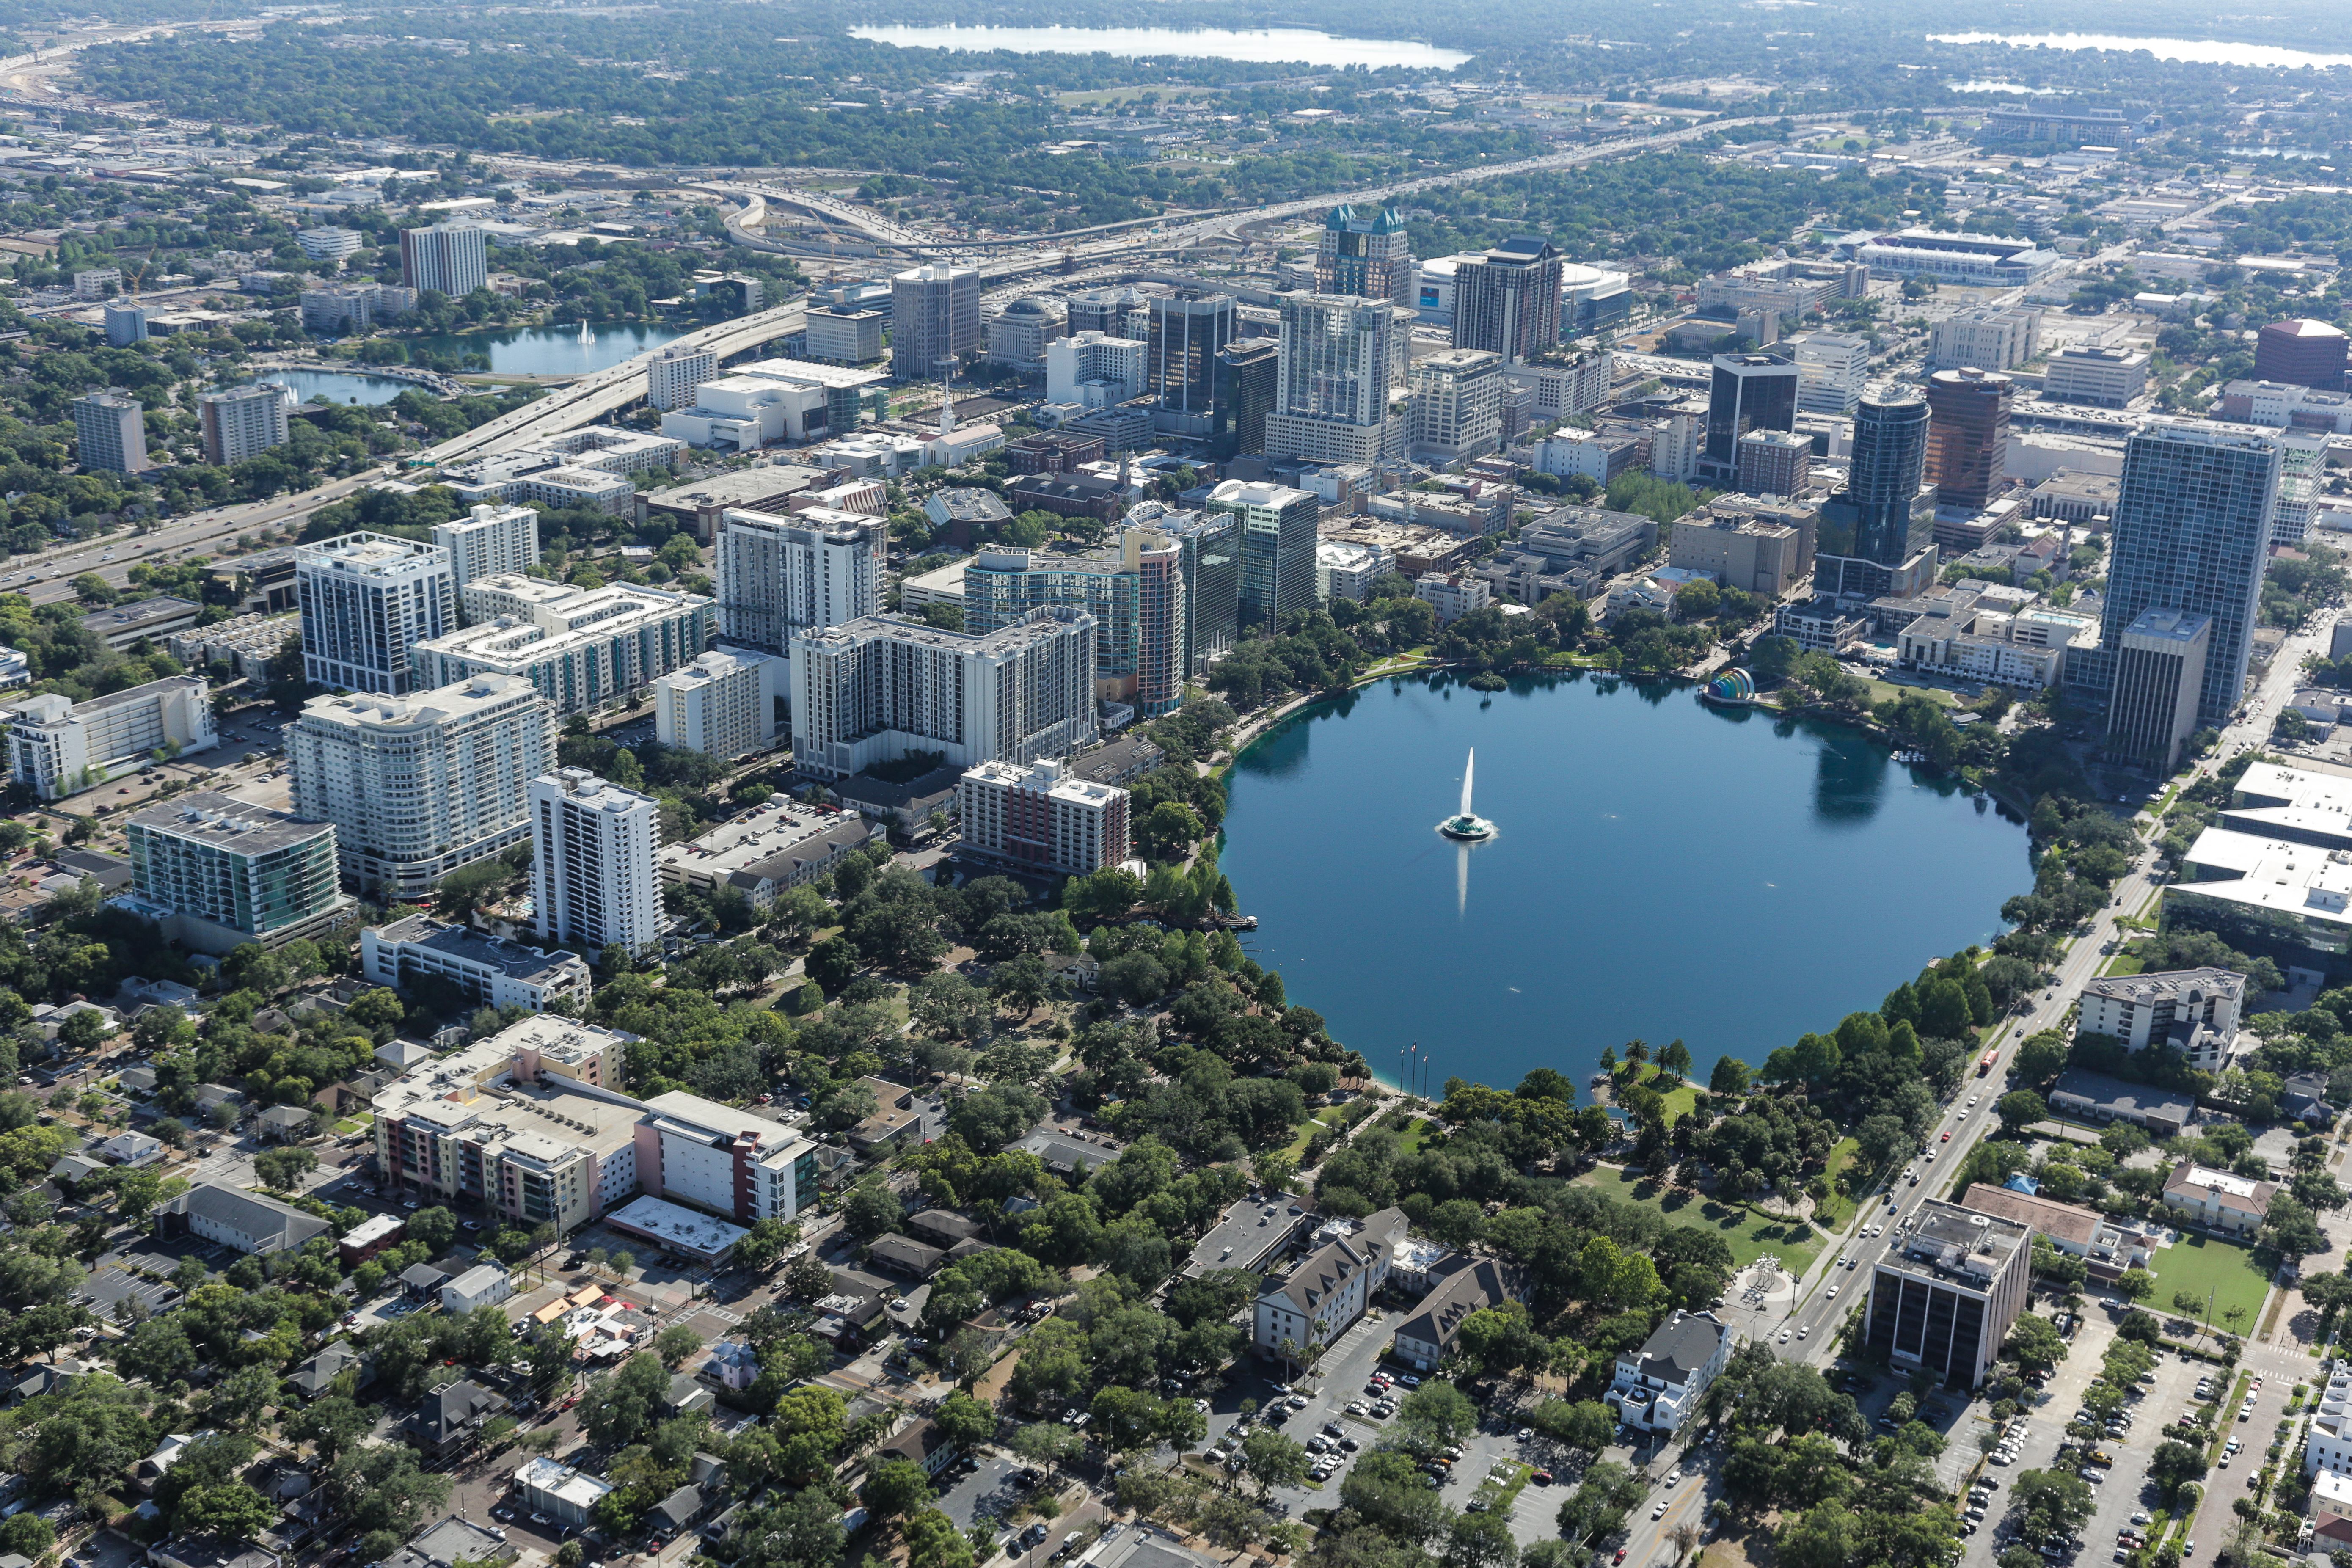 Orlando downtown aerial